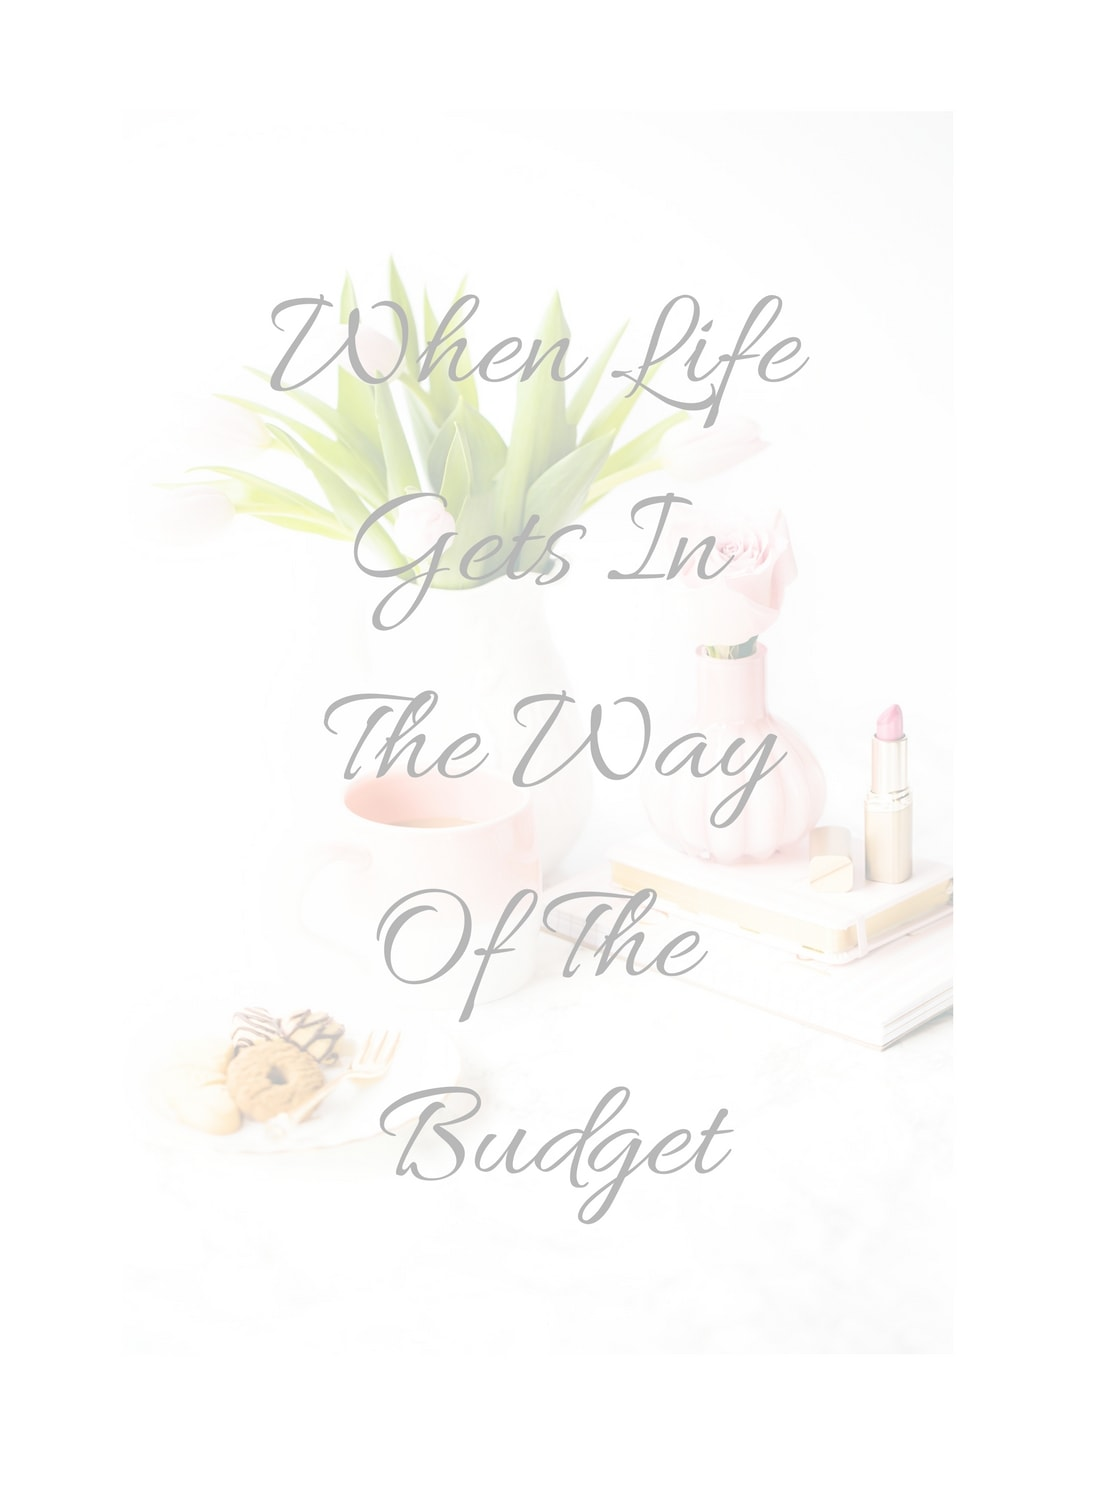 What To Do When Life Gets In The Way Of The Budget